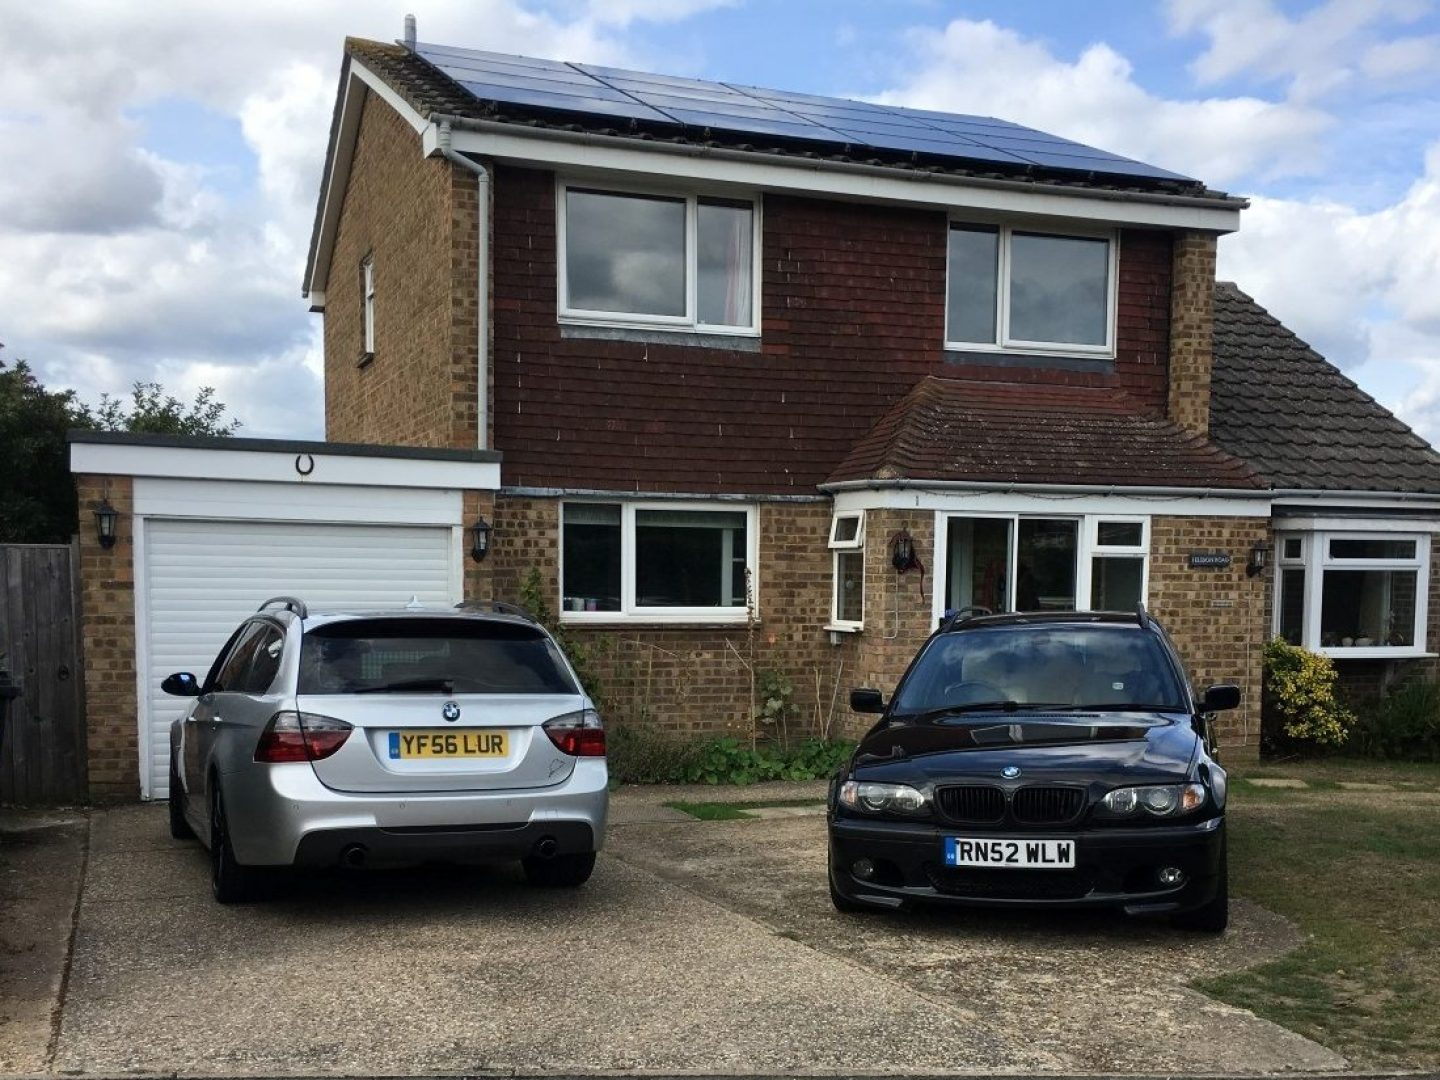 335d and 330d in front of house